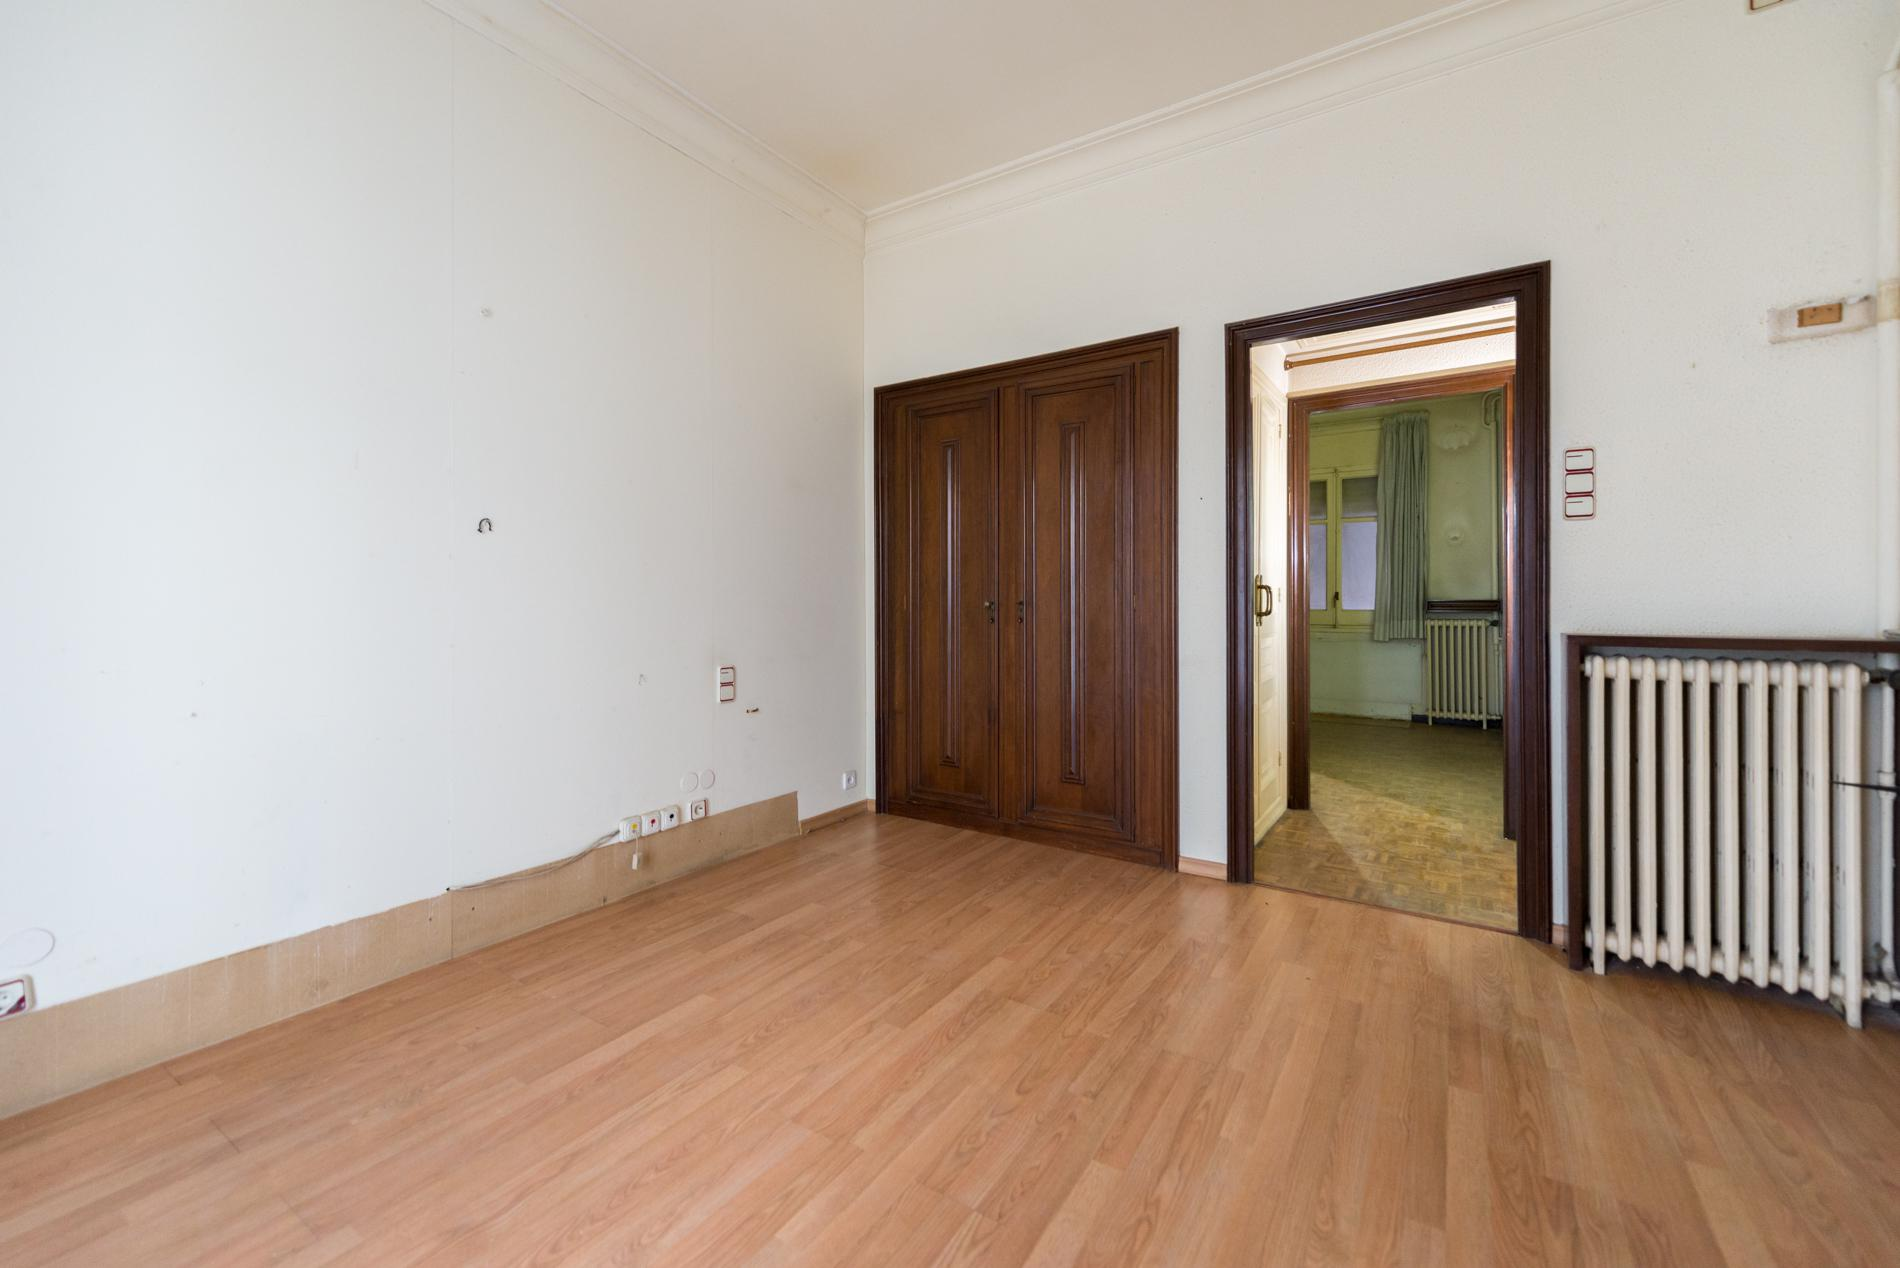 223286 Apartment for sale in Sarrià-Sant Gervasi, Sant Gervasi-Galvany 28